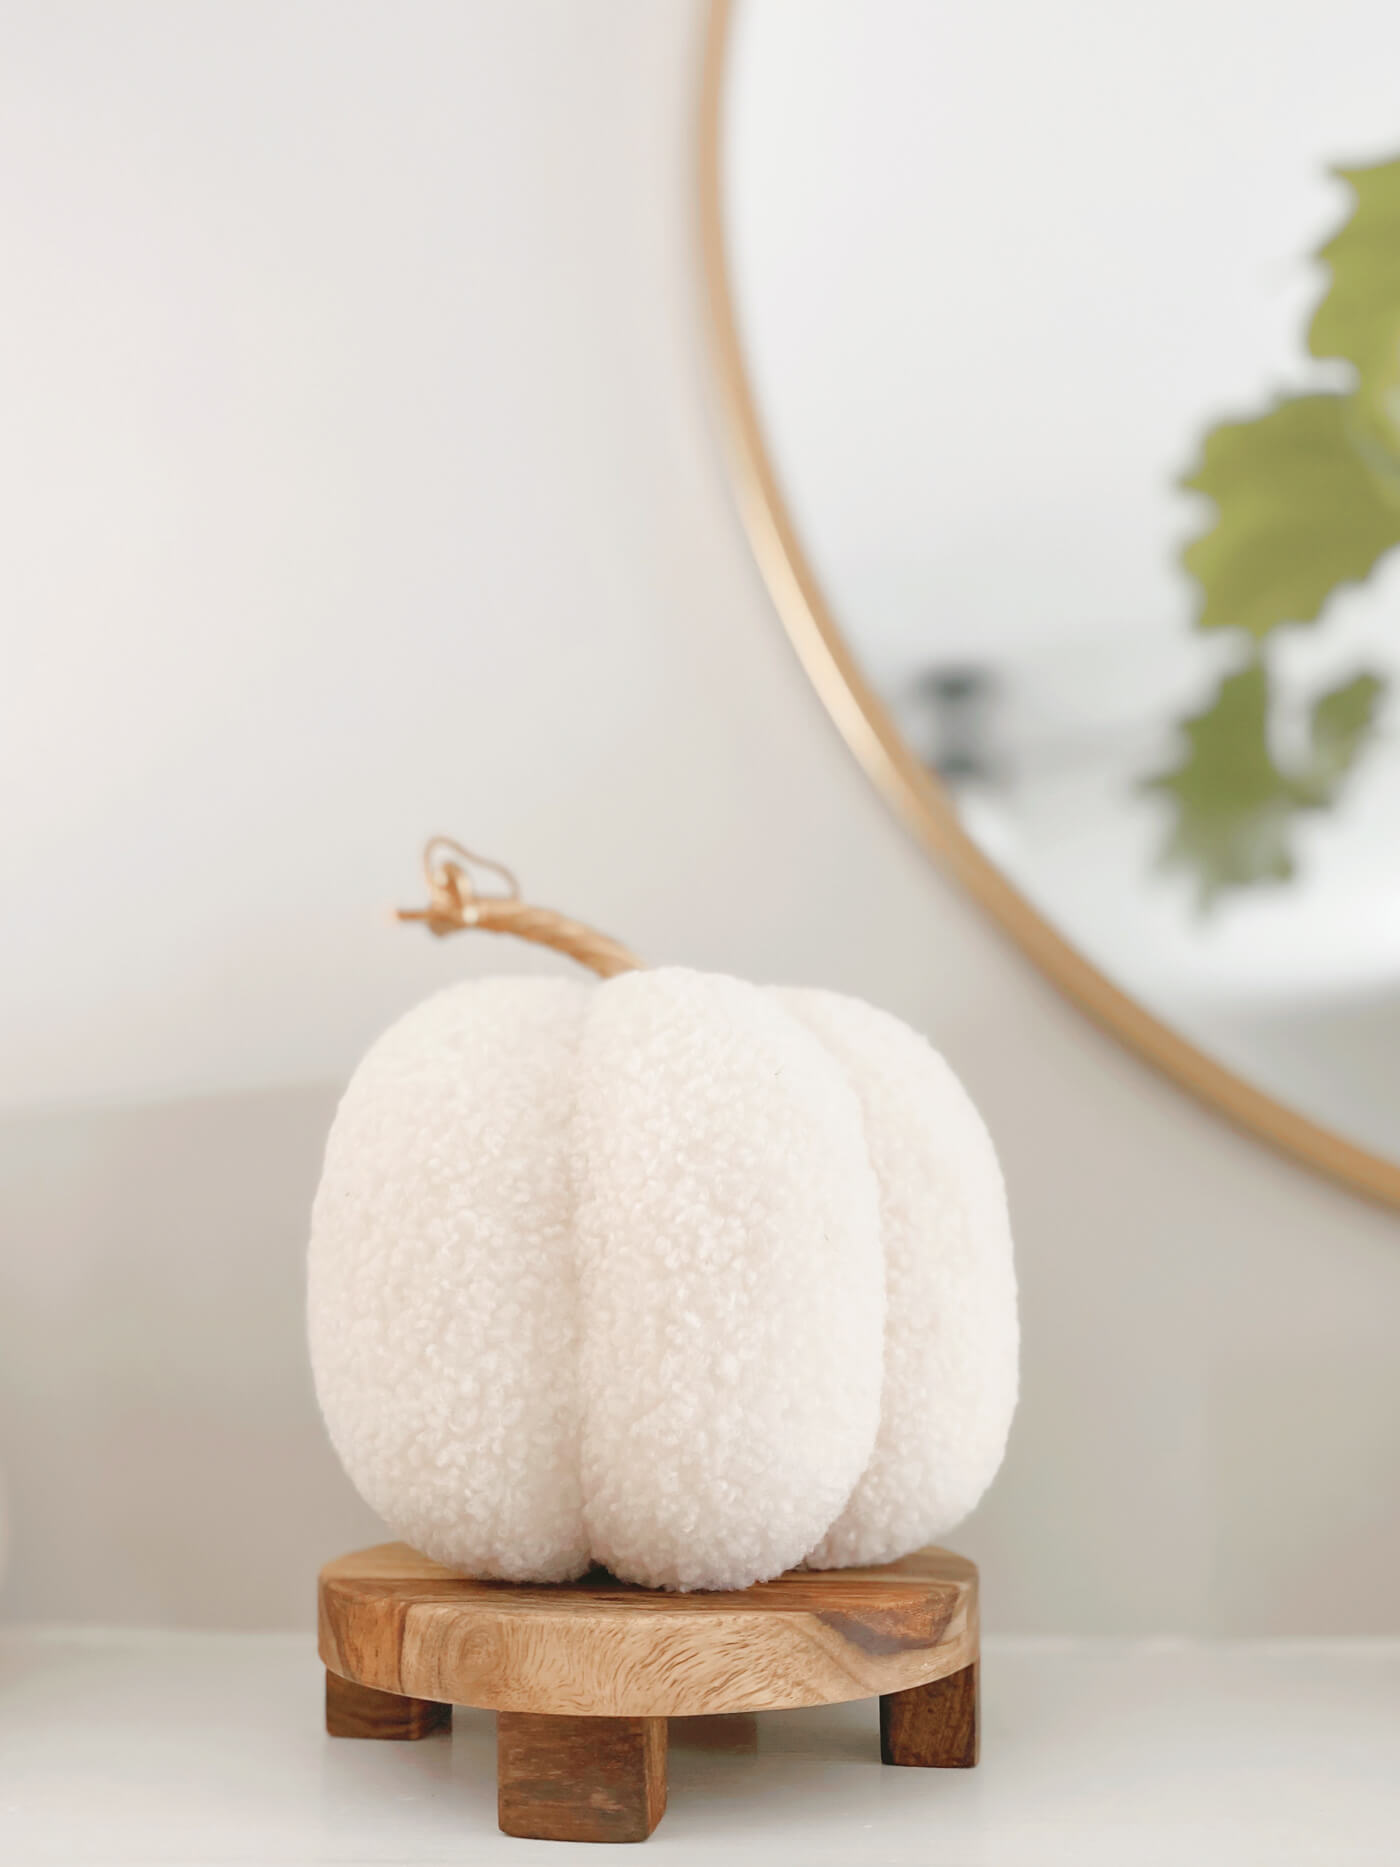 Neutral Fall Decor - When your decorating style changes